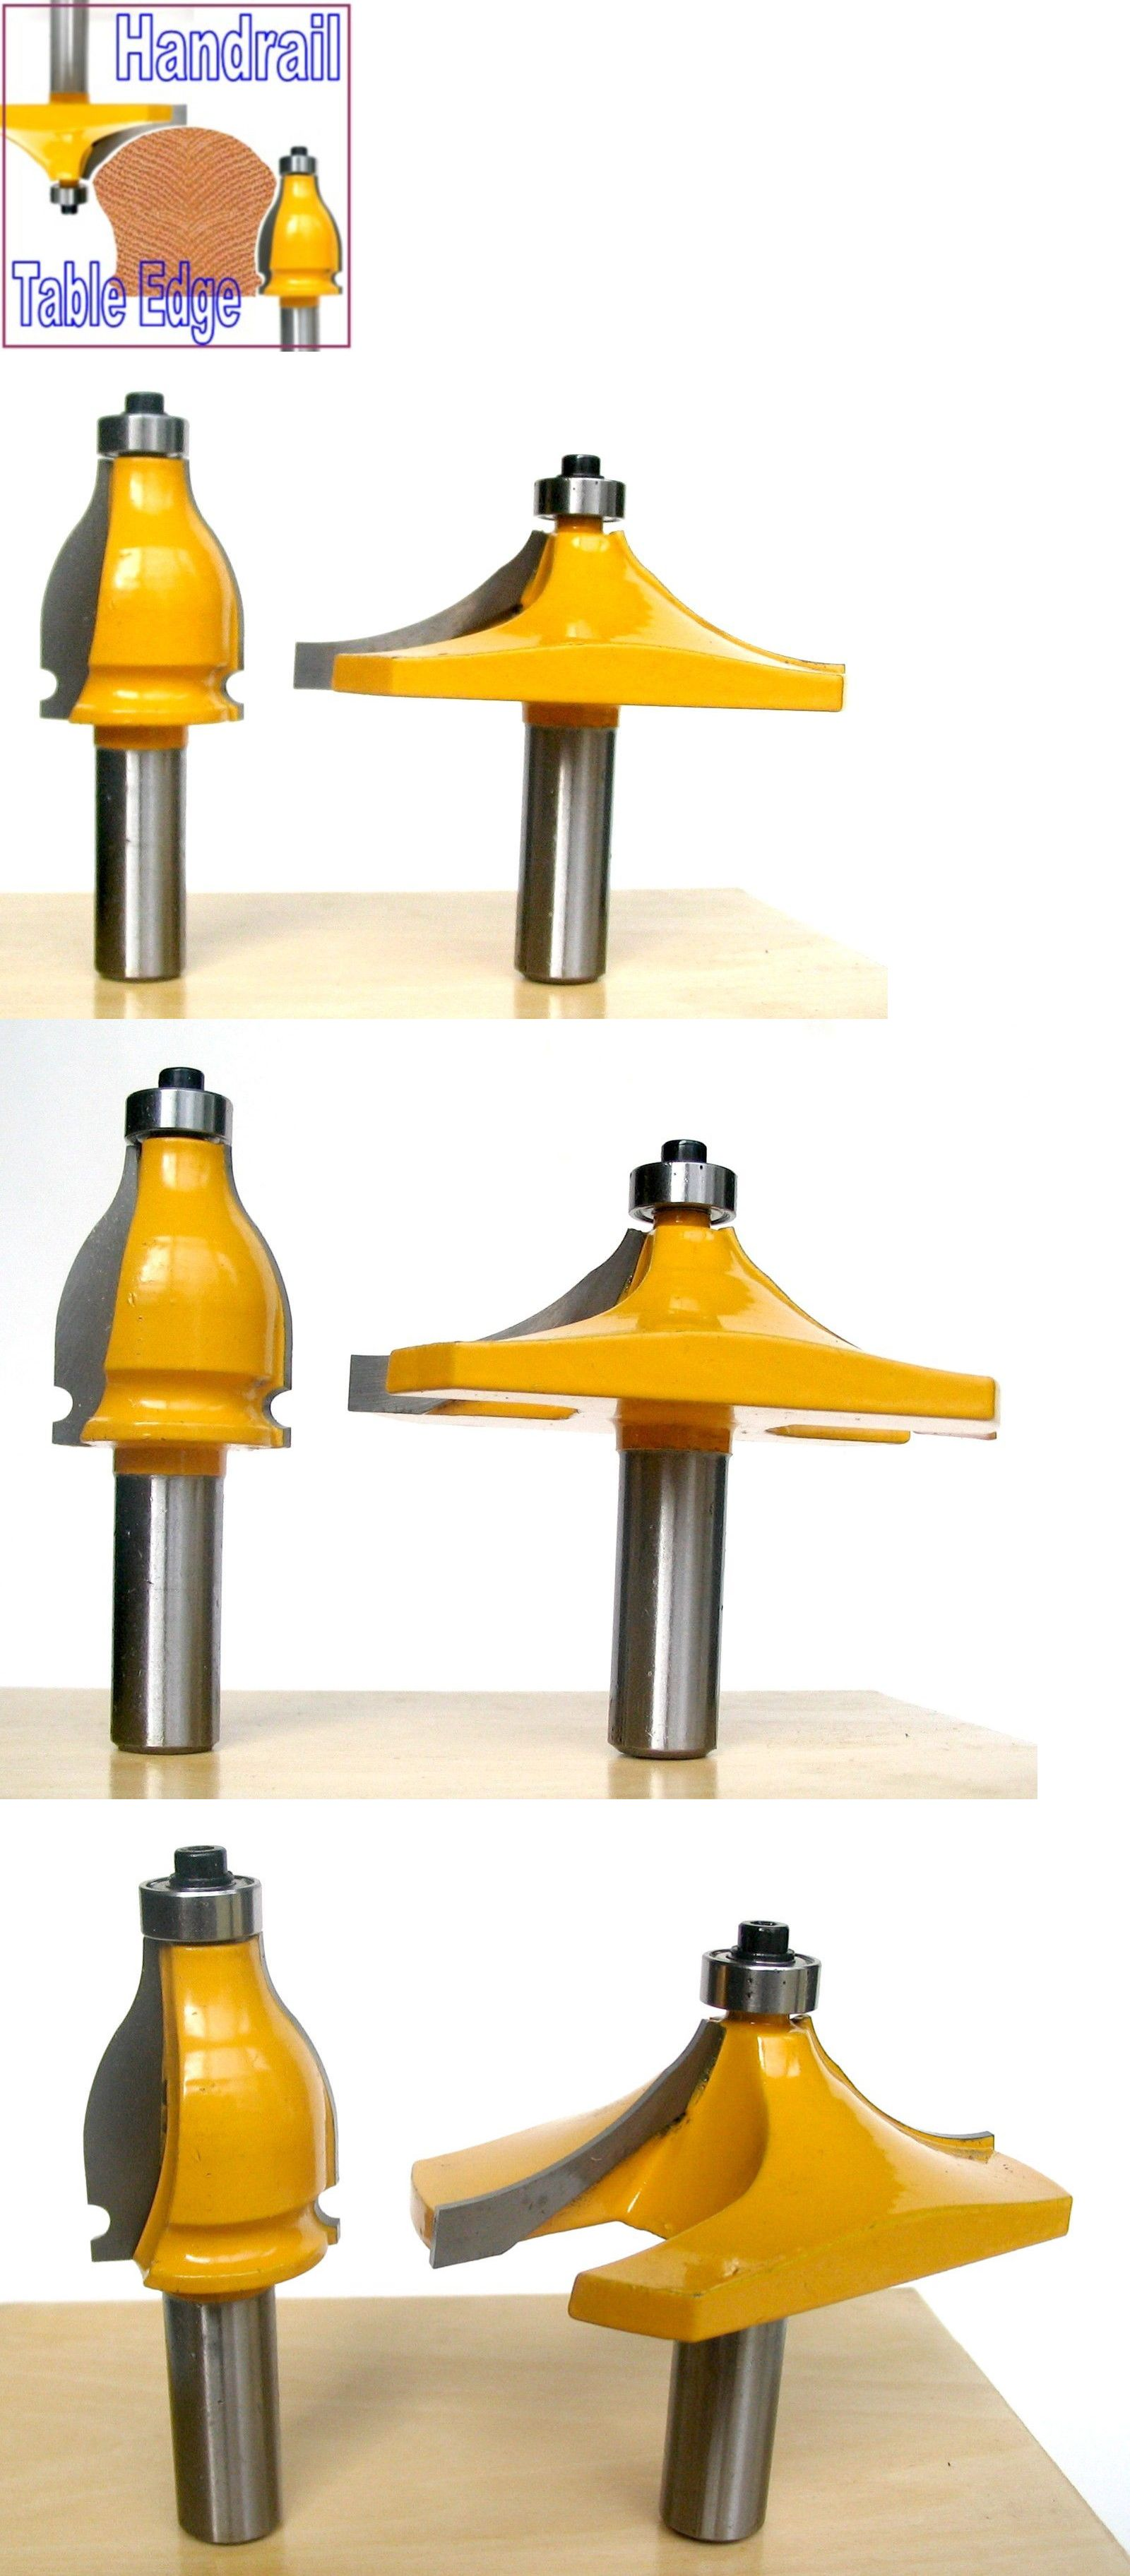 wainscoting router bits